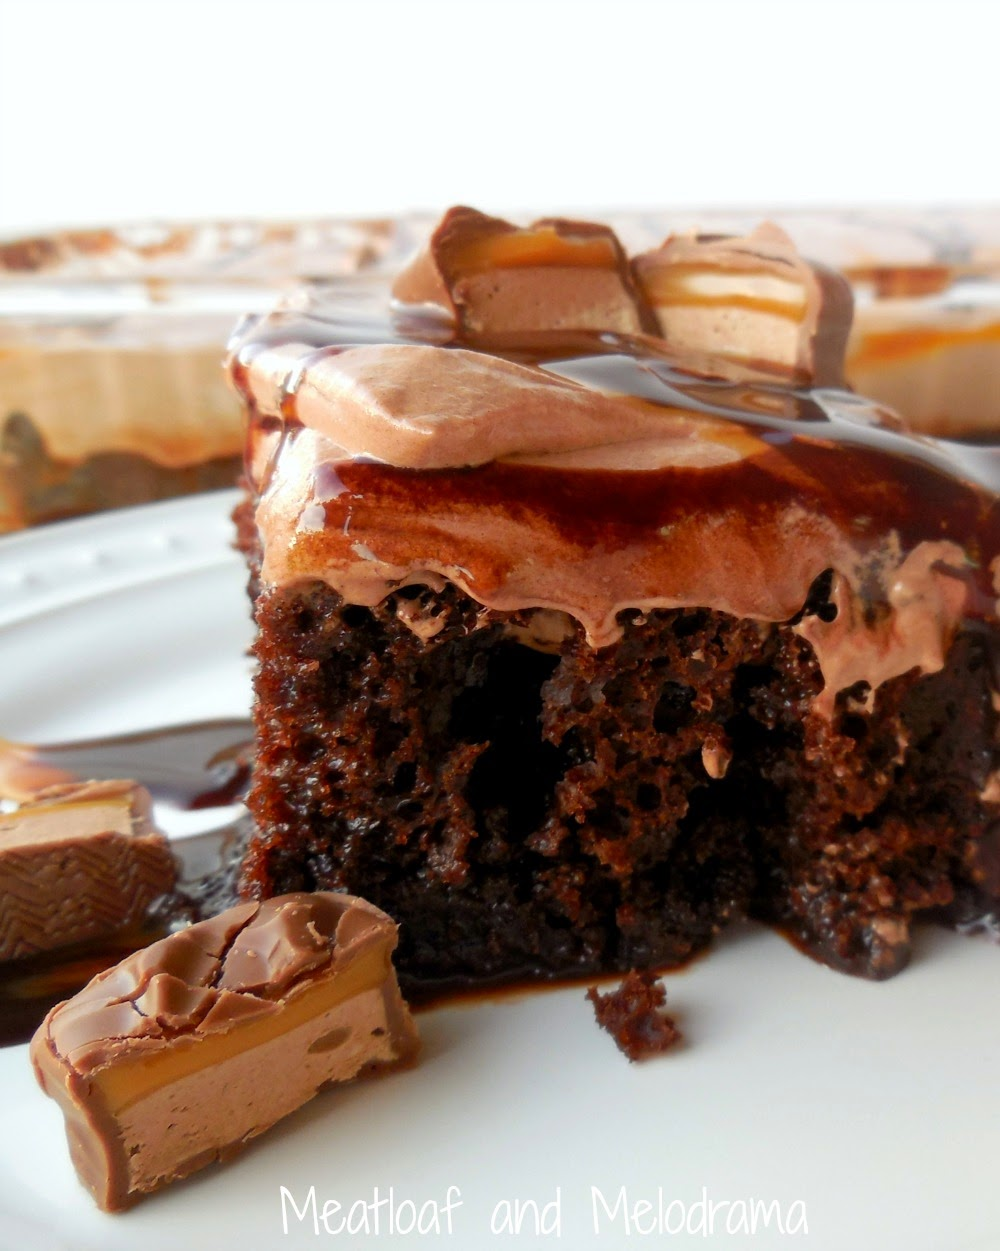 chocolate poke cake with chocolate and caramel syrup and milky way bars.